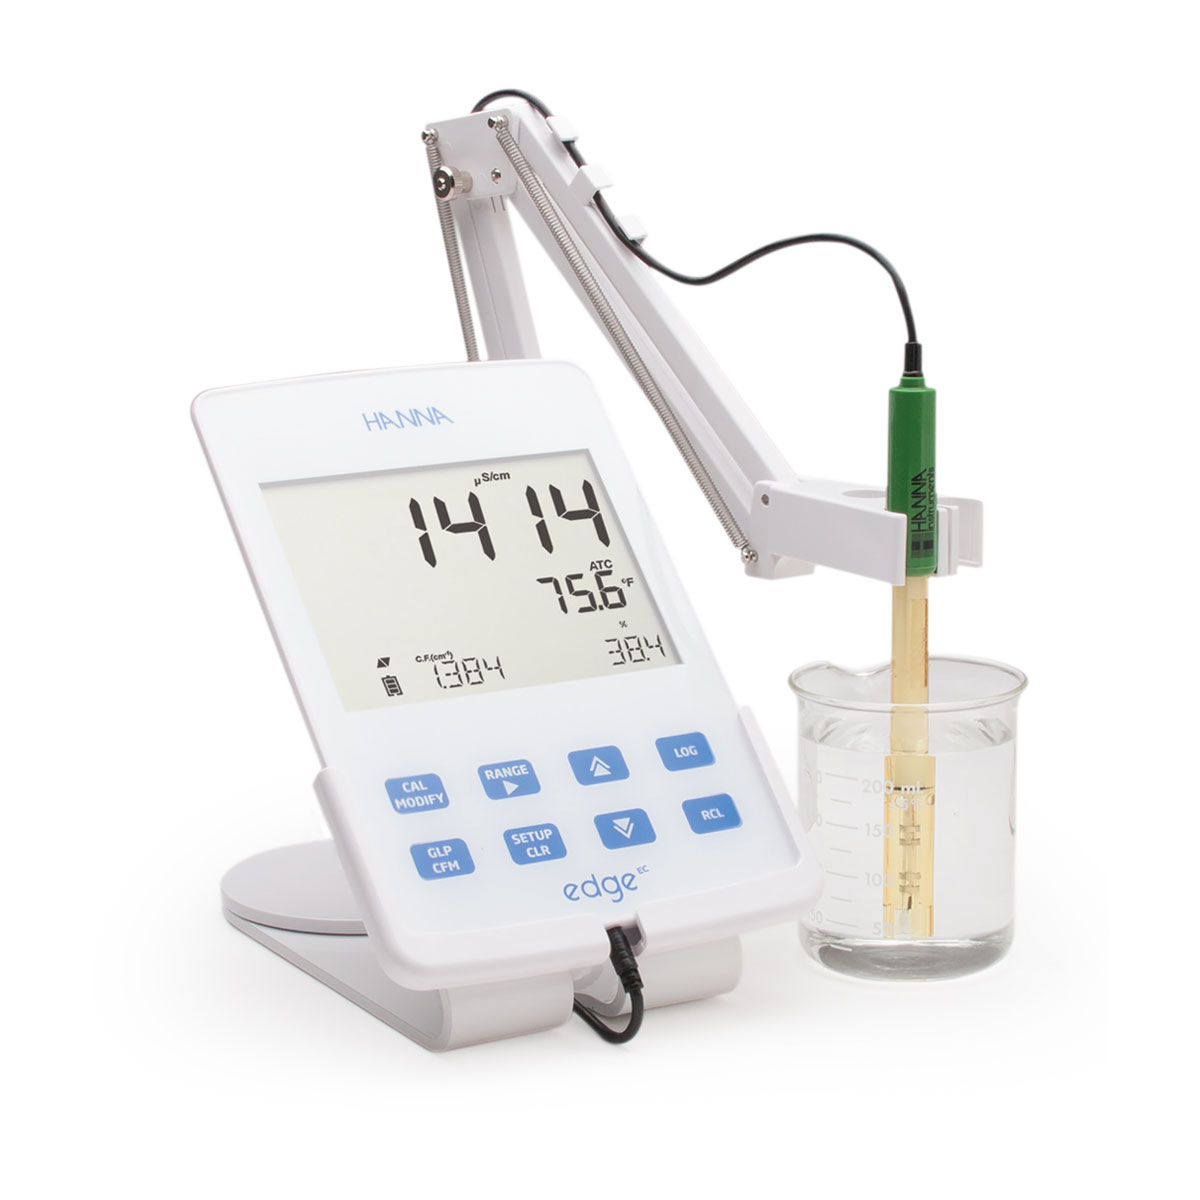 edge® Dedicated Conductivity/TDS/Salinity Meter - HI2003